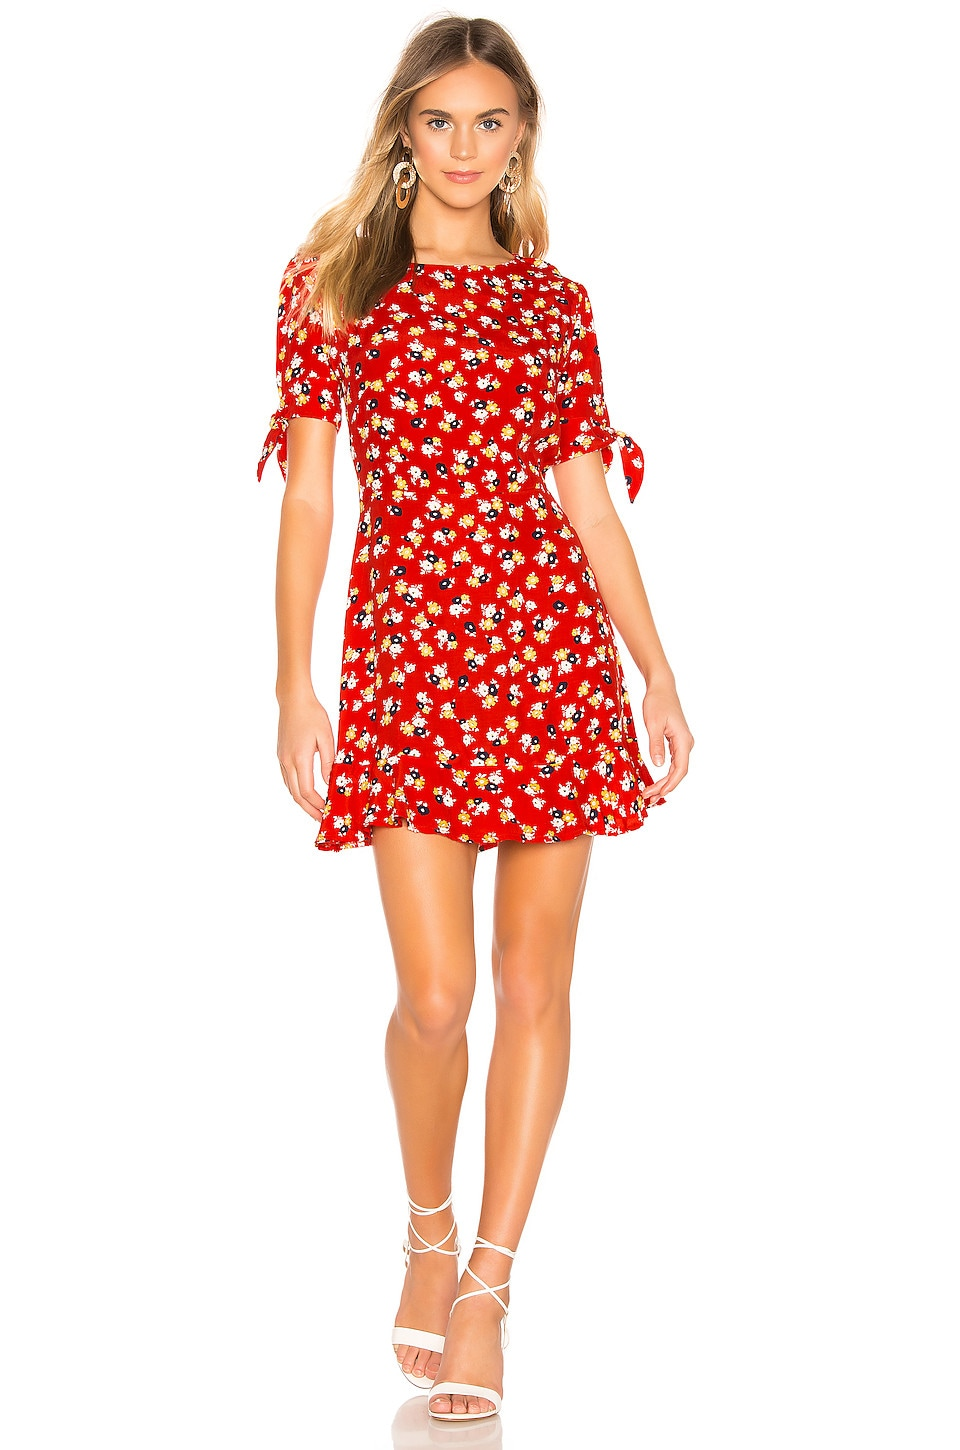 FAITHFULL THE BRAND Daphne Dress in Red Jasmine Floral